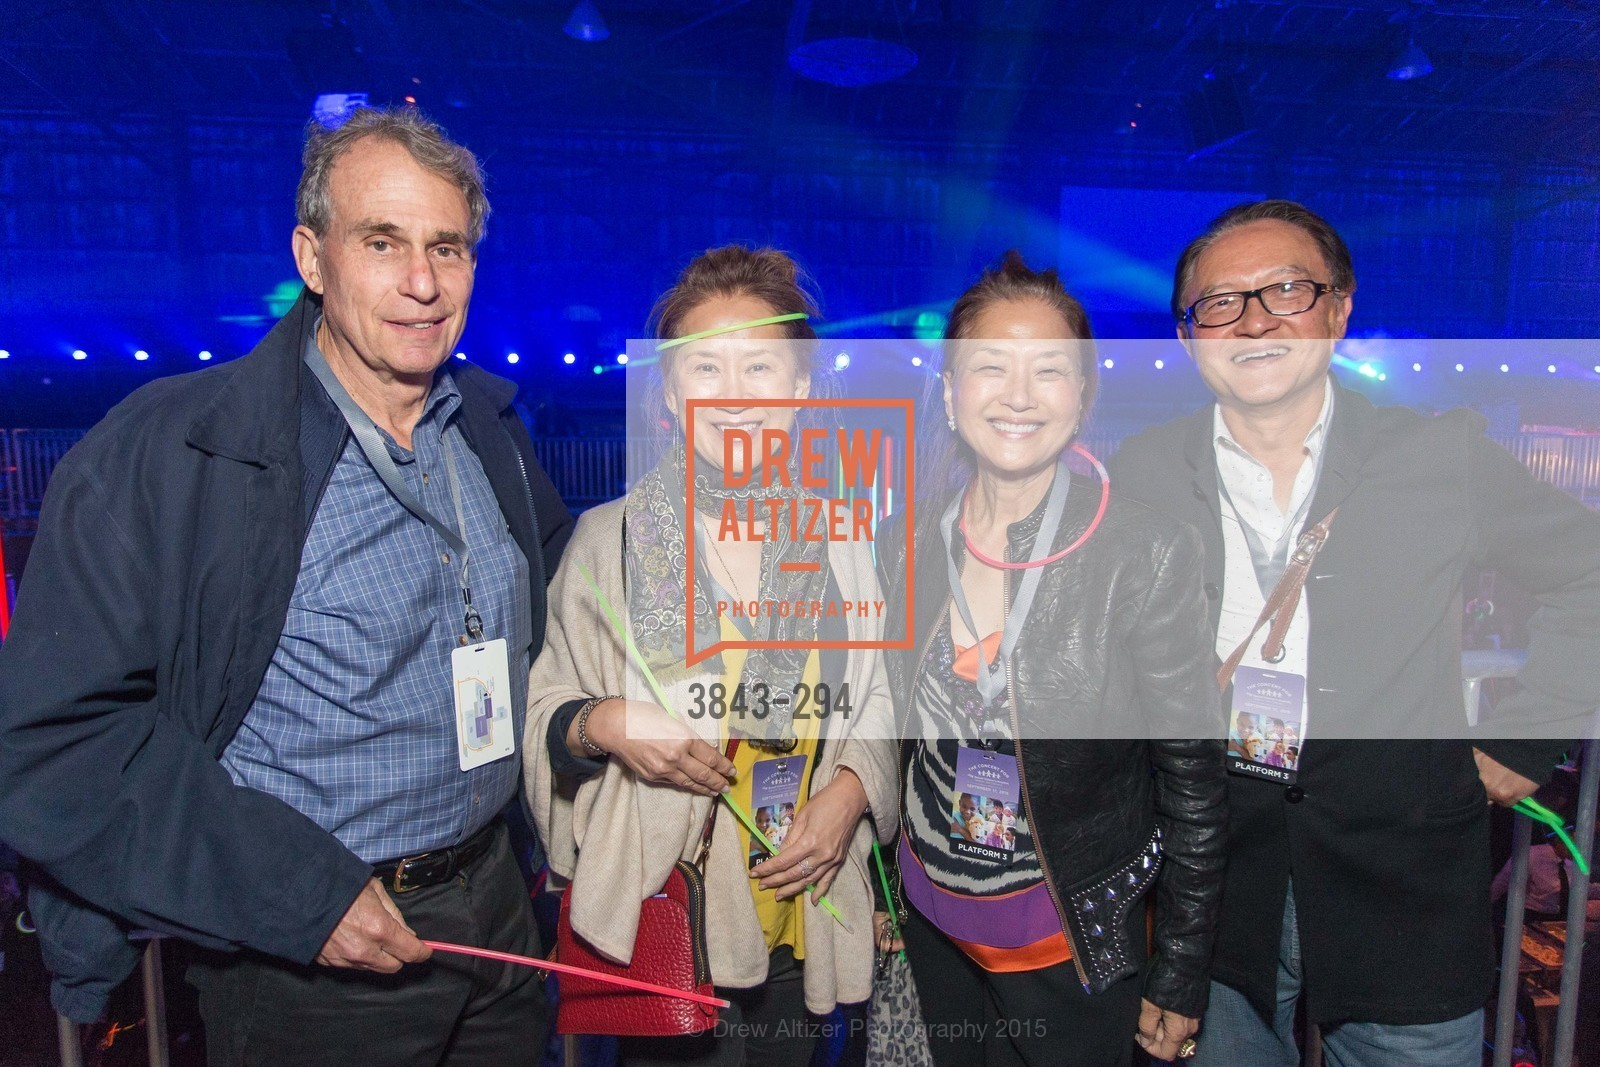 John Pollock, Olivia Decker, Tom Chan, The Concert For UCSF Benioff Children's Hospital, Pier 70, September 17th, 2015,Drew Altizer, Drew Altizer Photography, full-service event agency, private events, San Francisco photographer, photographer California